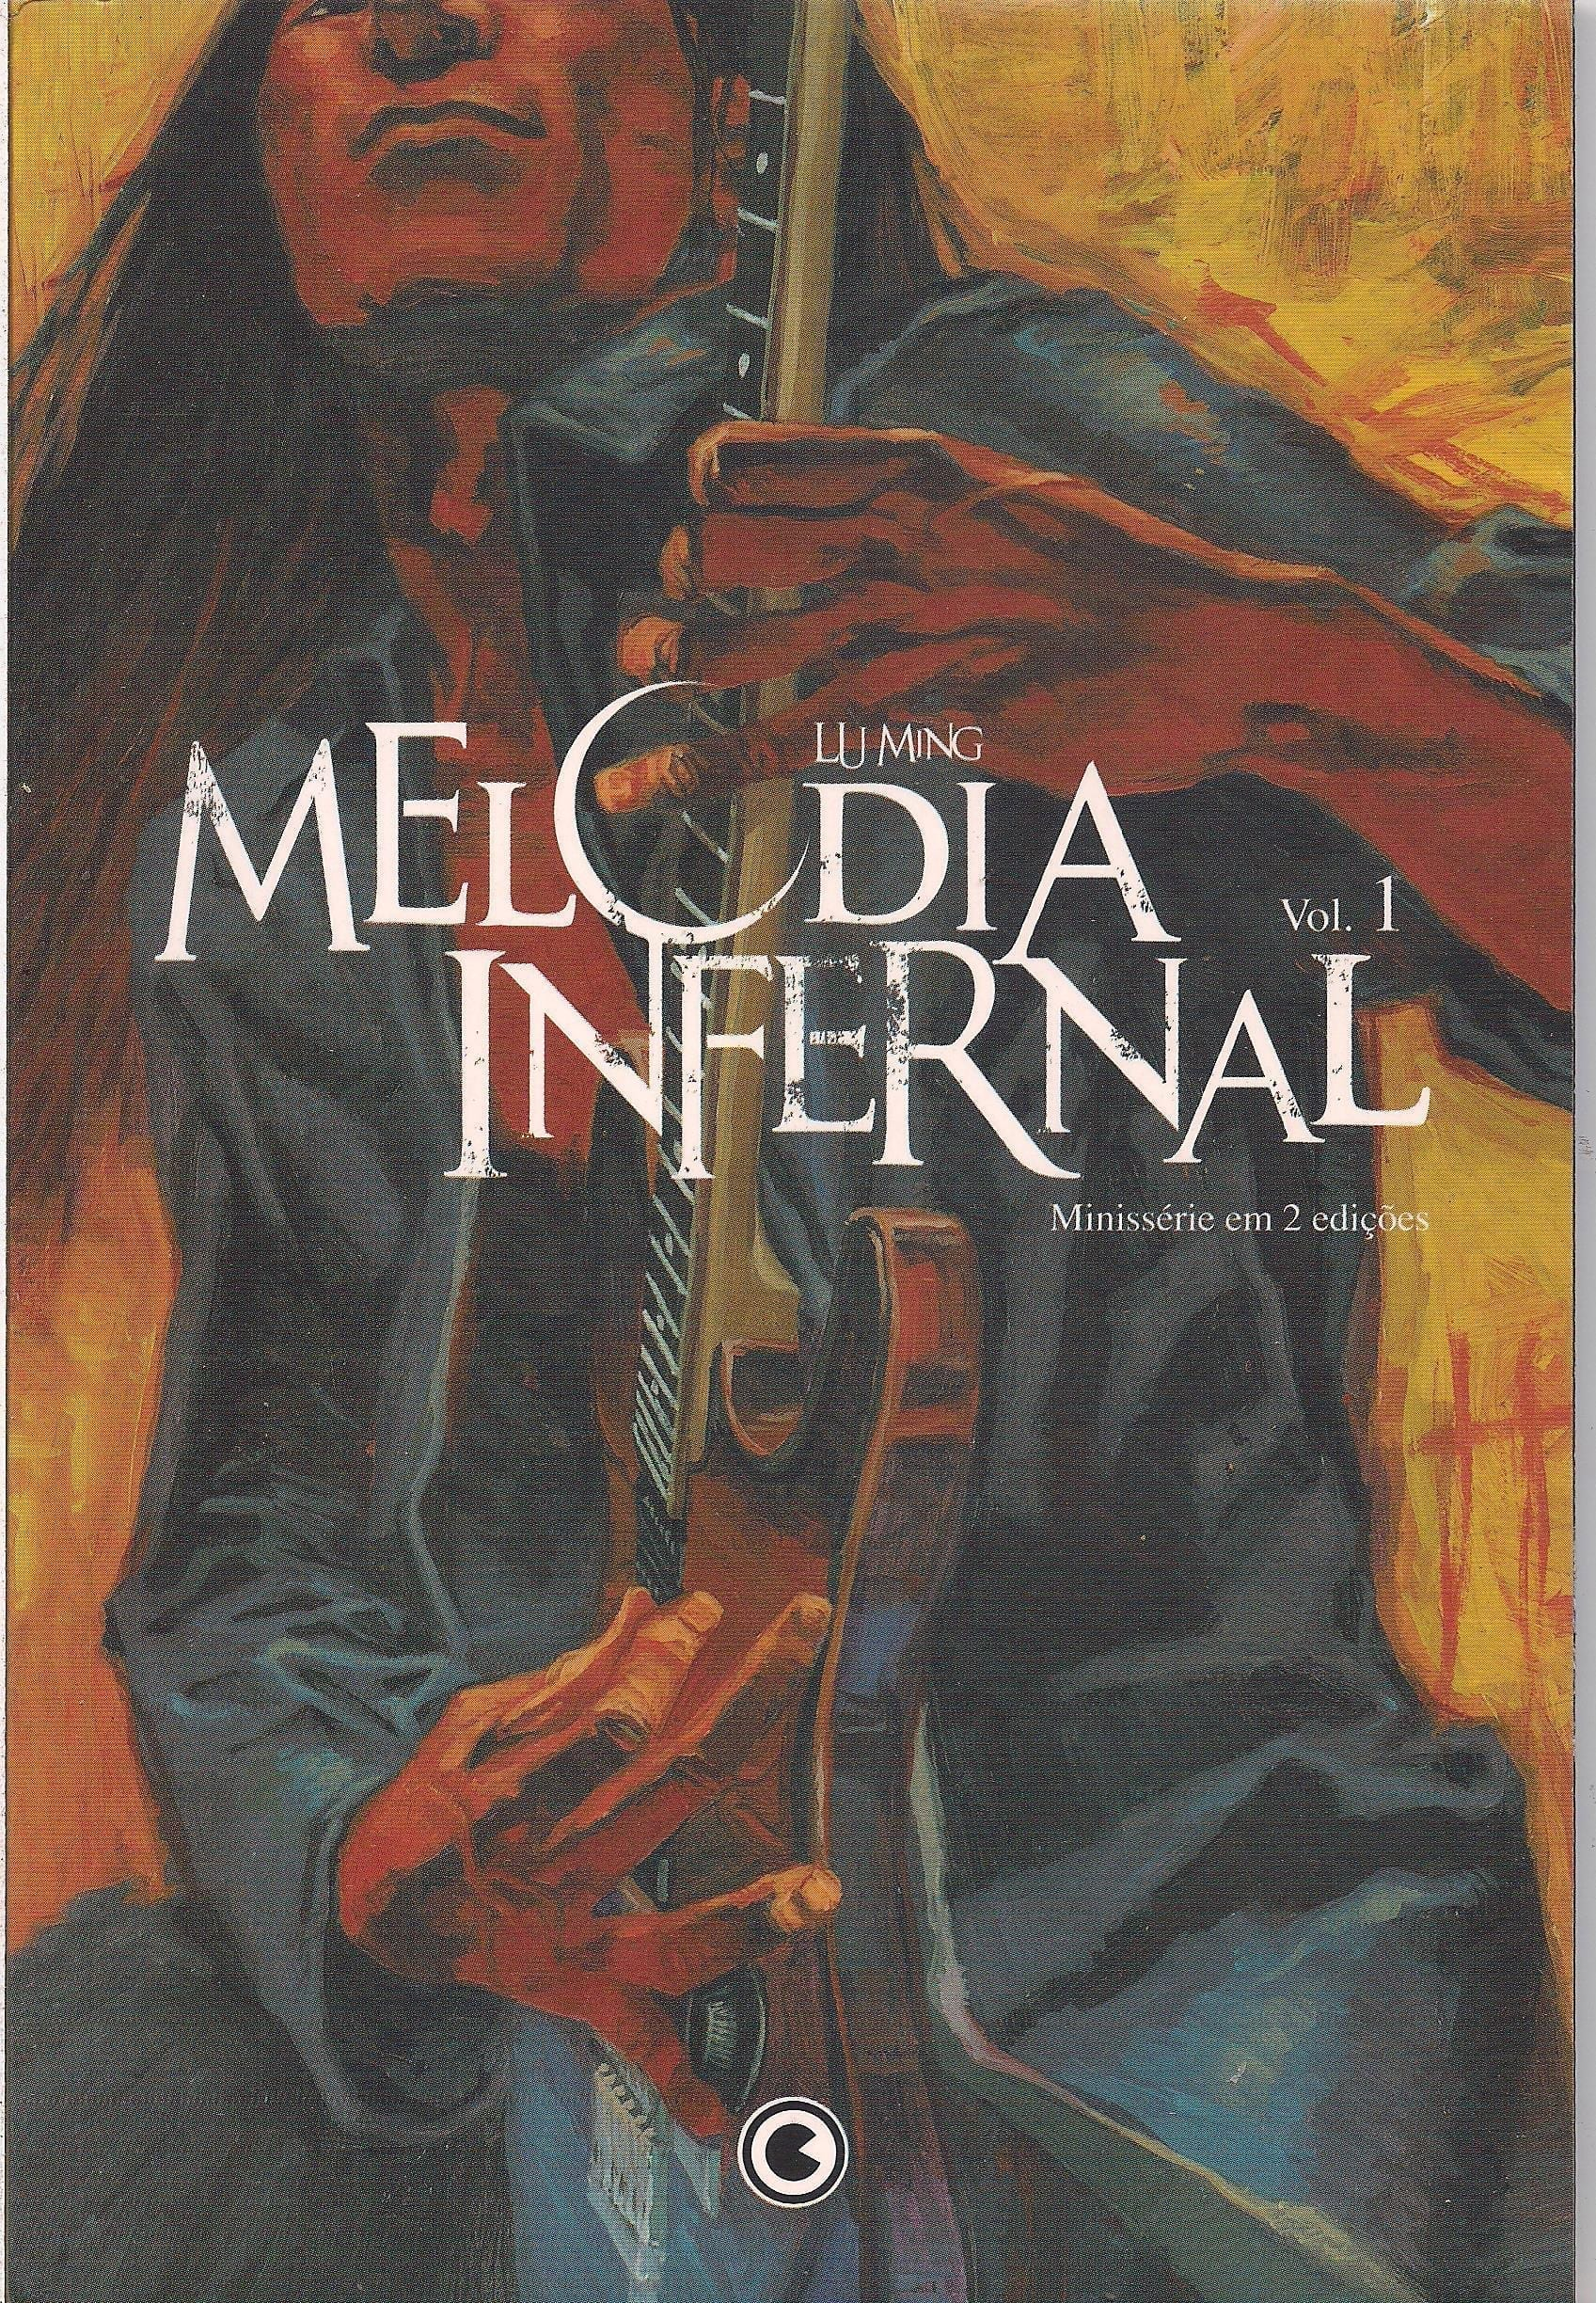 Capa: Melodia Infernal 1